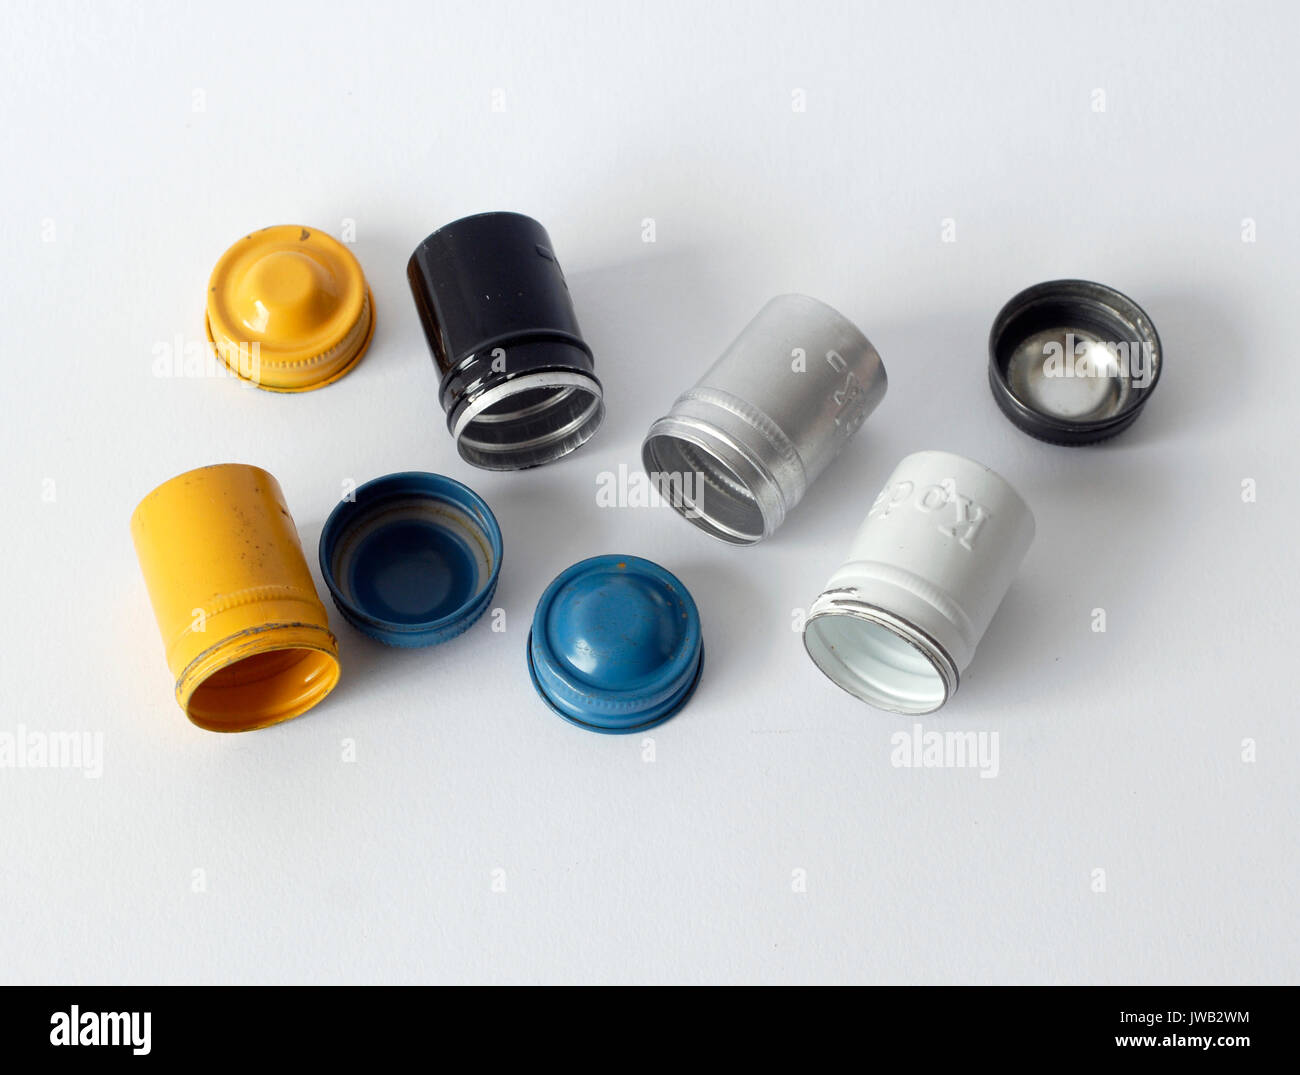 Antiques cans for Kodak film 35 mm. Originals from the fifties, in different colors - Stock Image